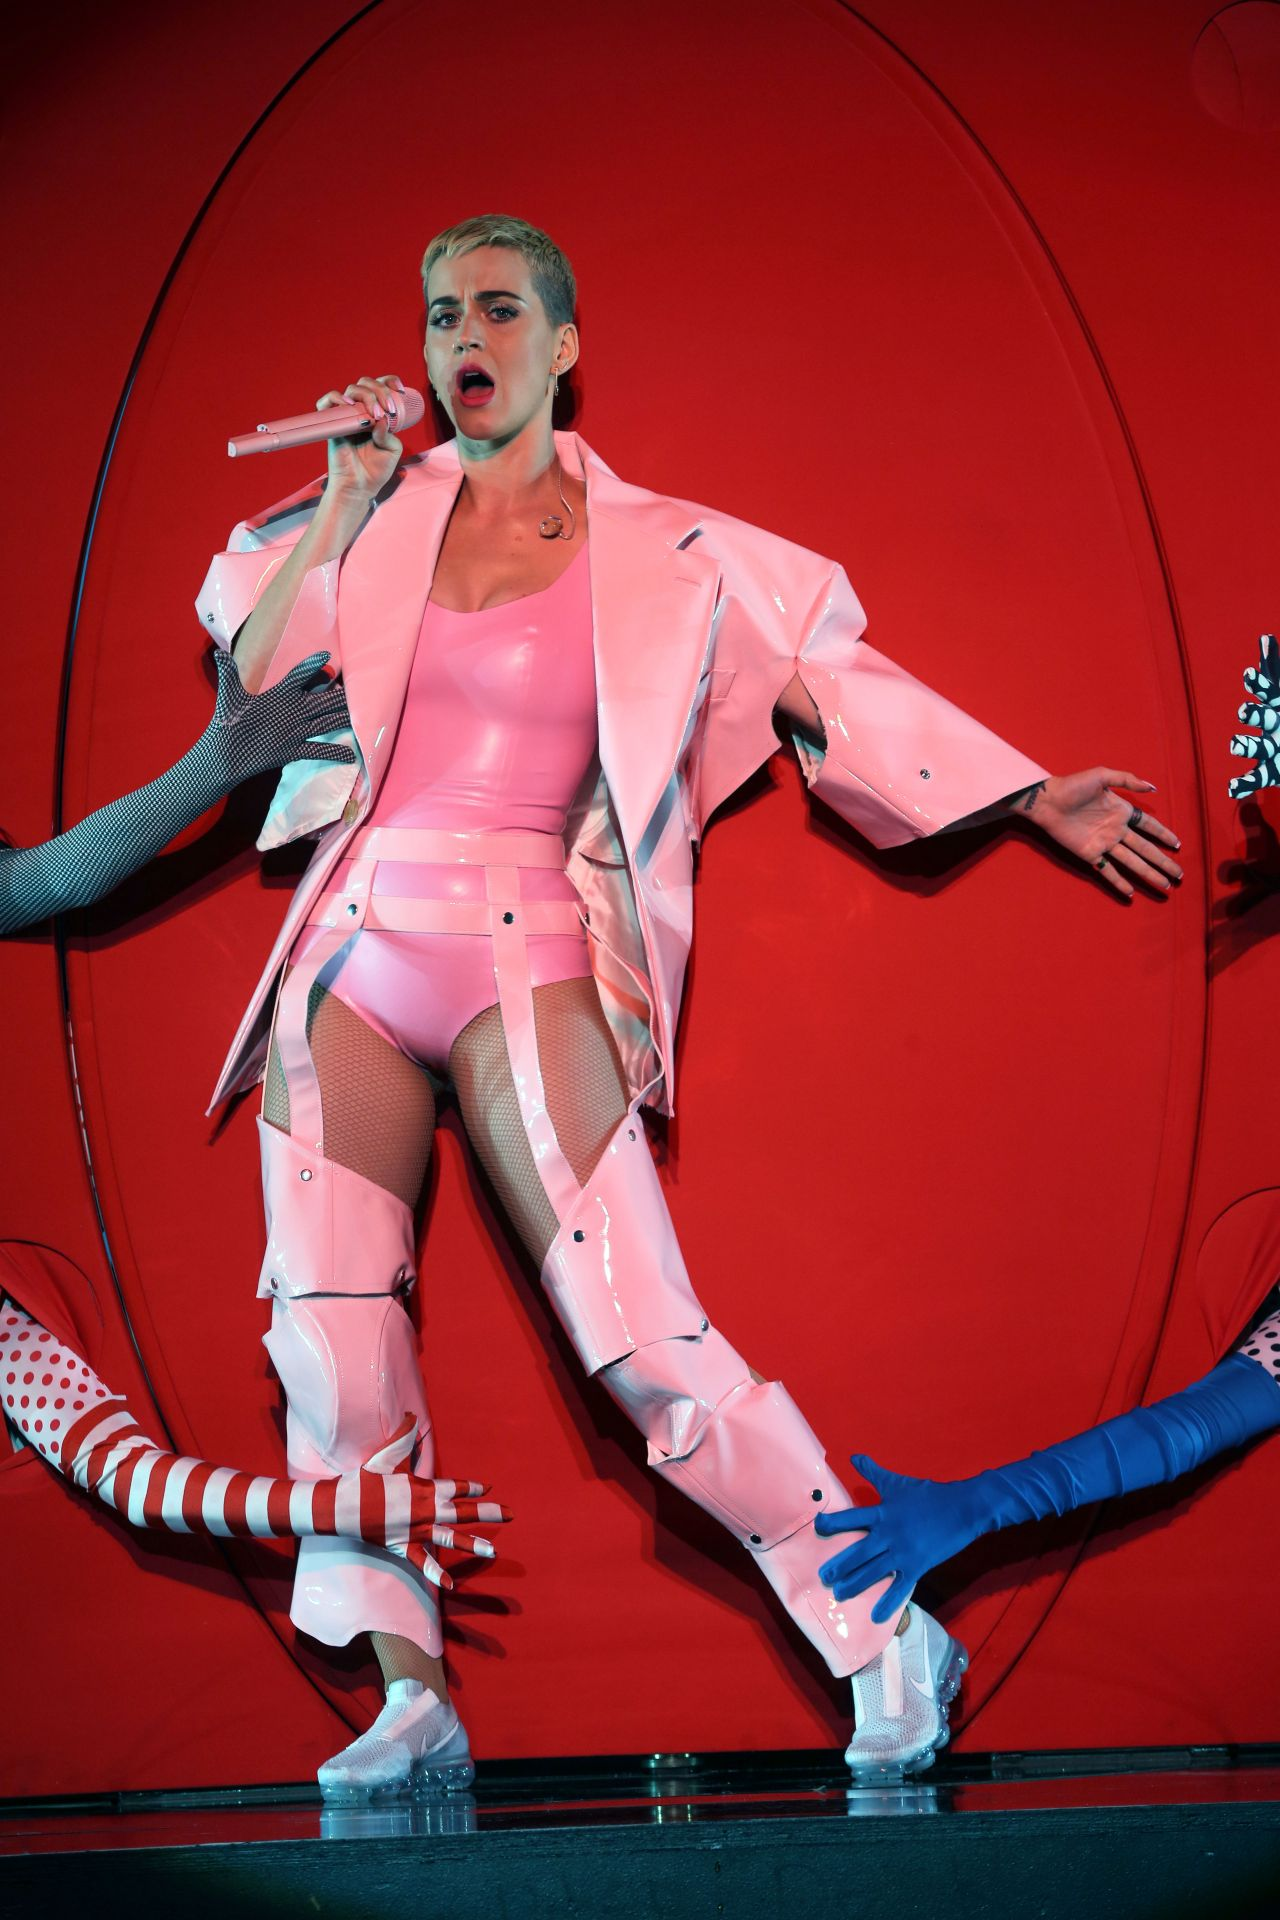 Katy Perry Performs At The You Tube Up Fronts In New York